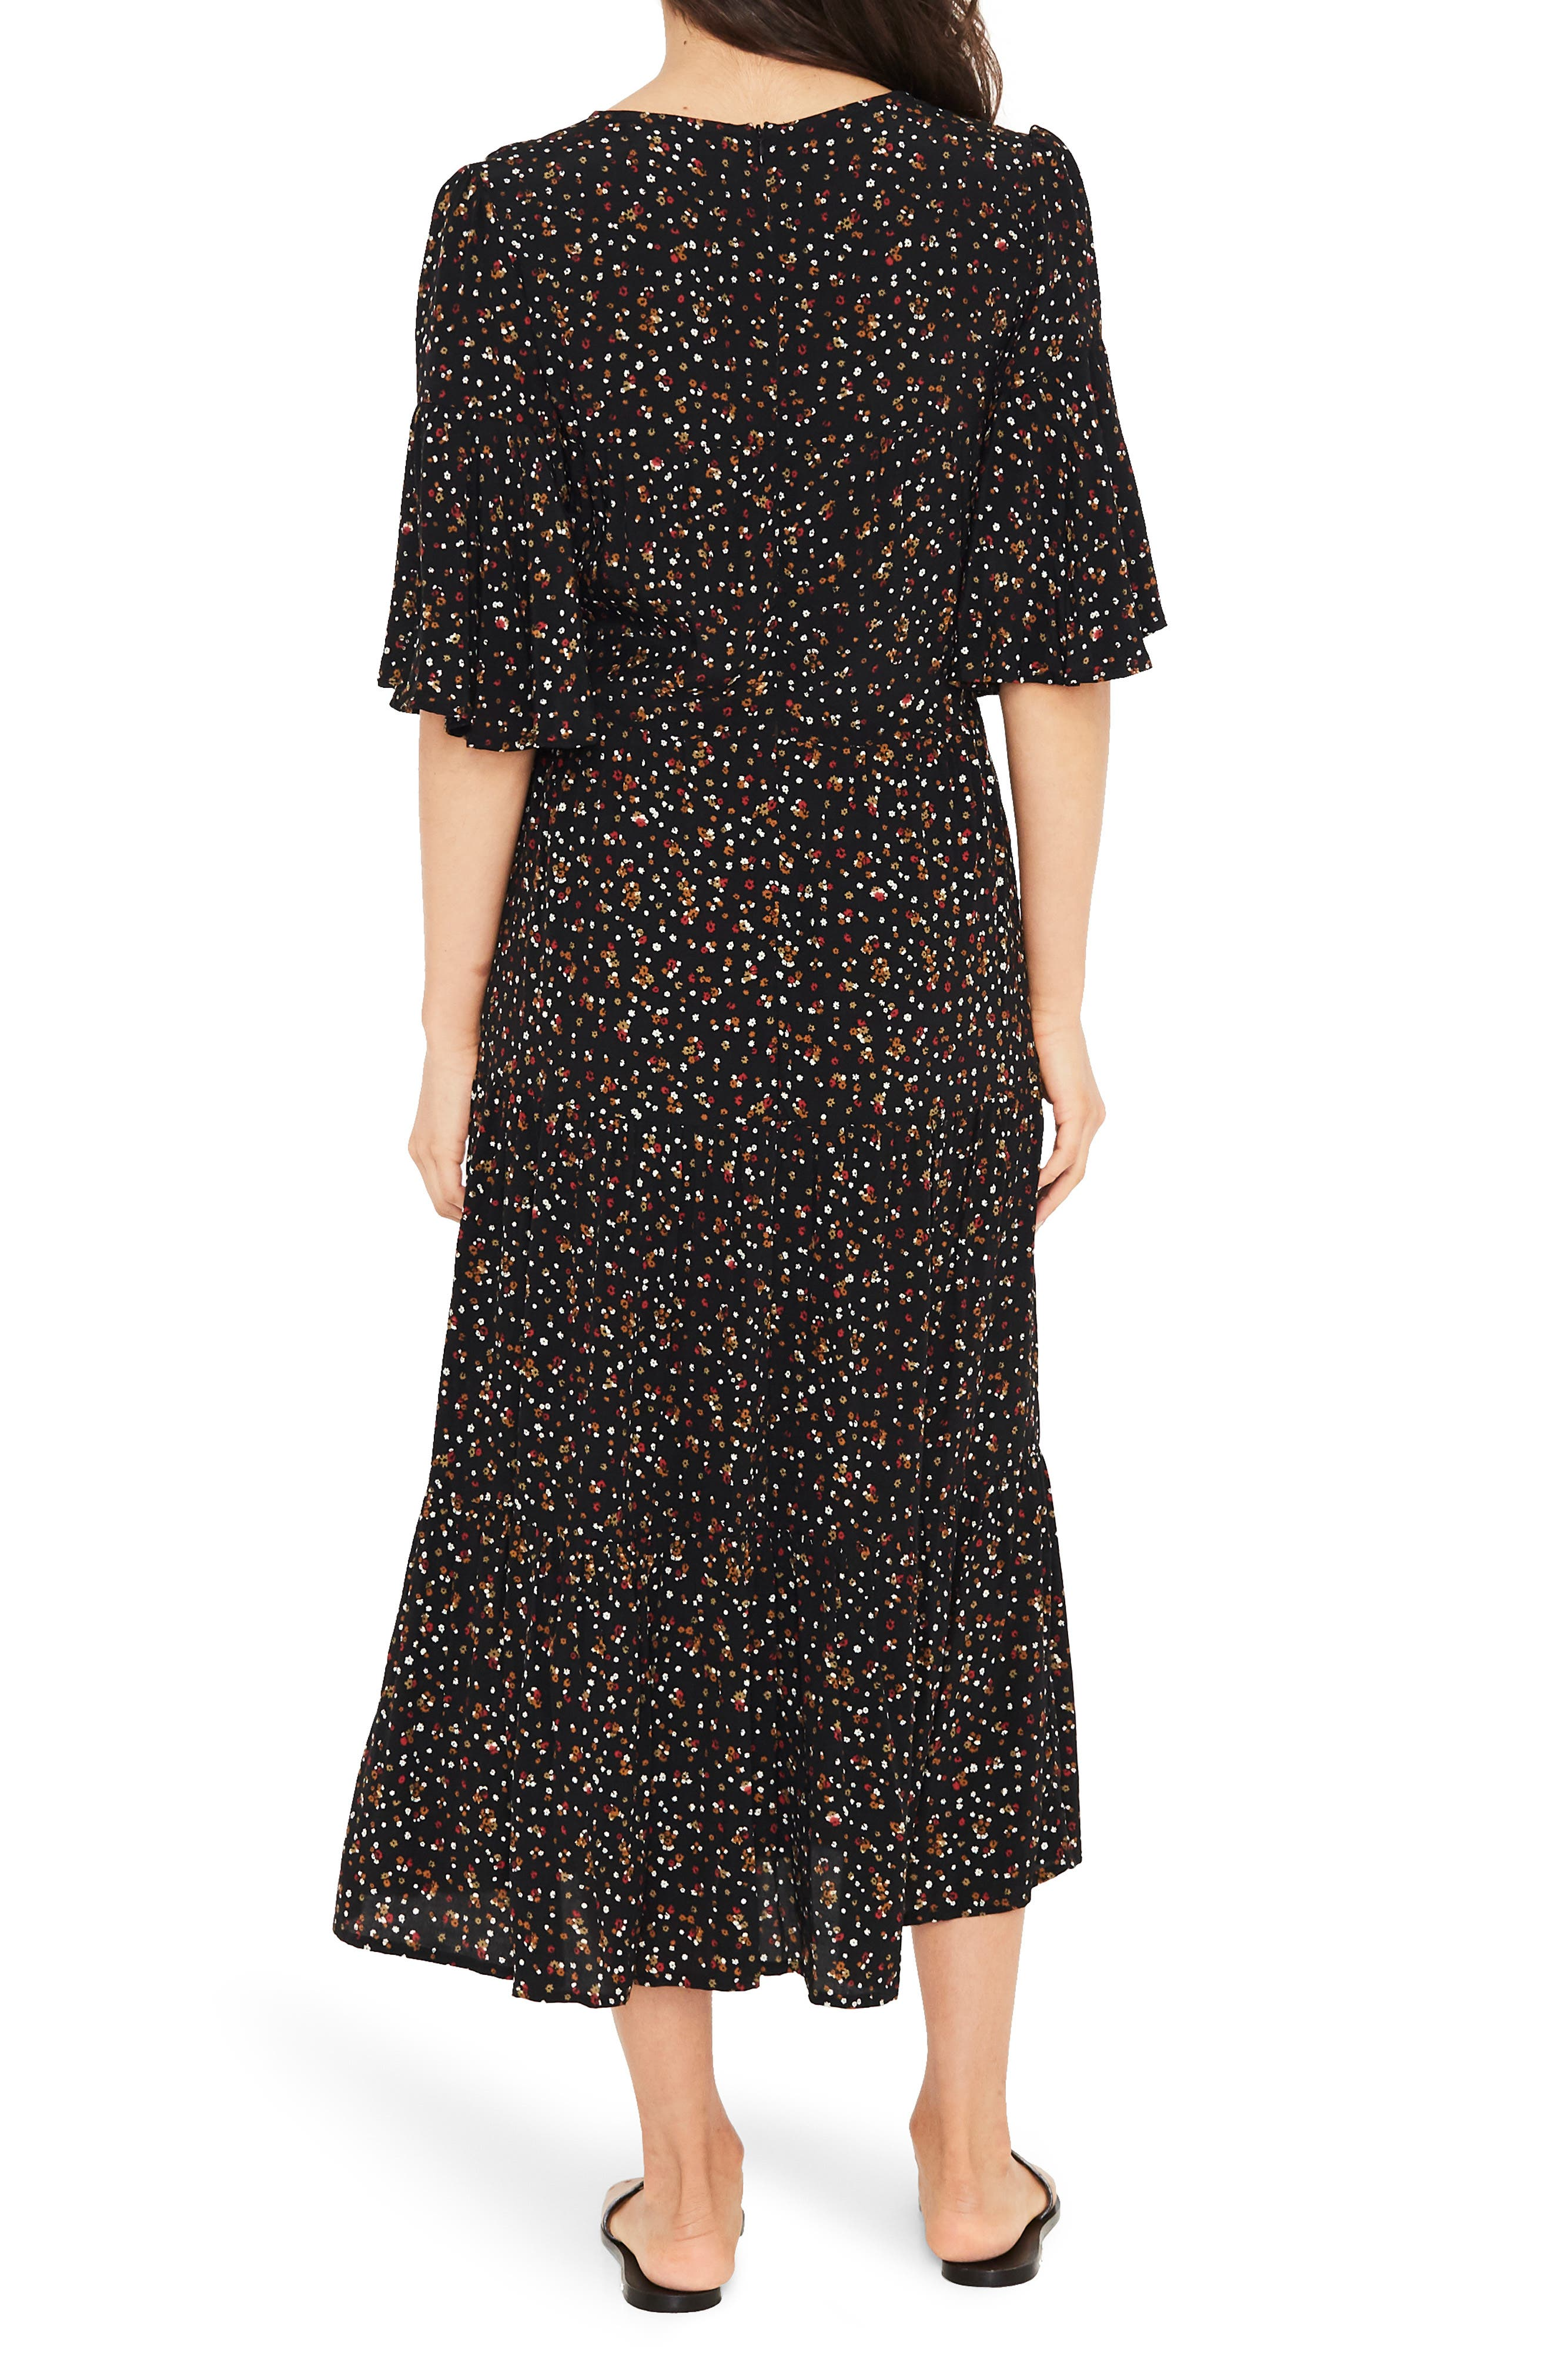 Melia Ditsy Floral Print Midi Dress,                             Alternate thumbnail 2, color,                             001